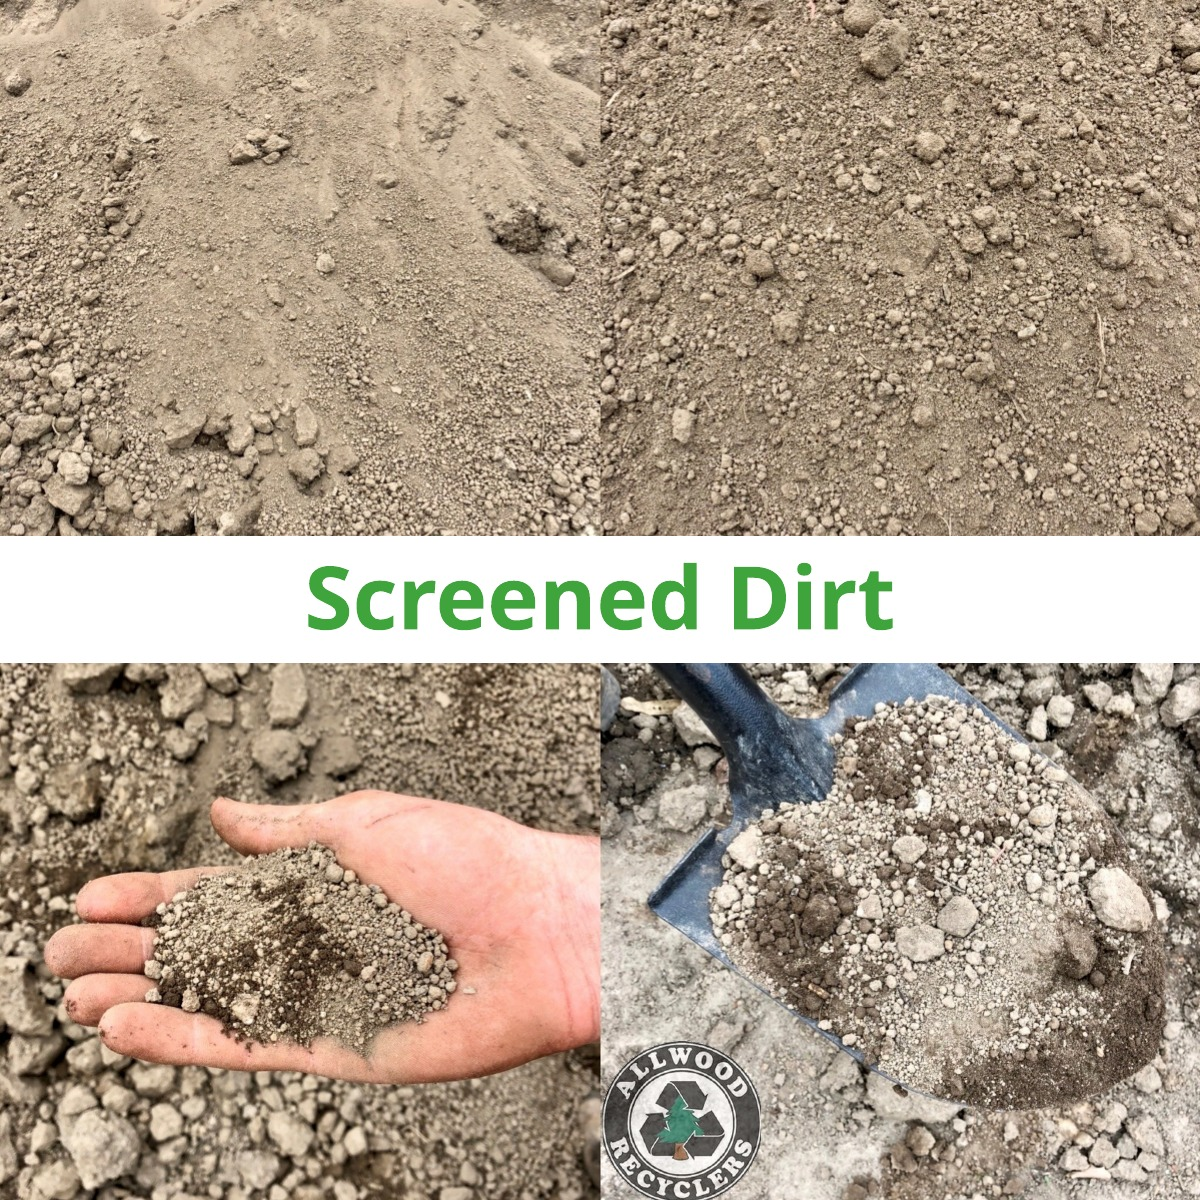 Screened Dirt